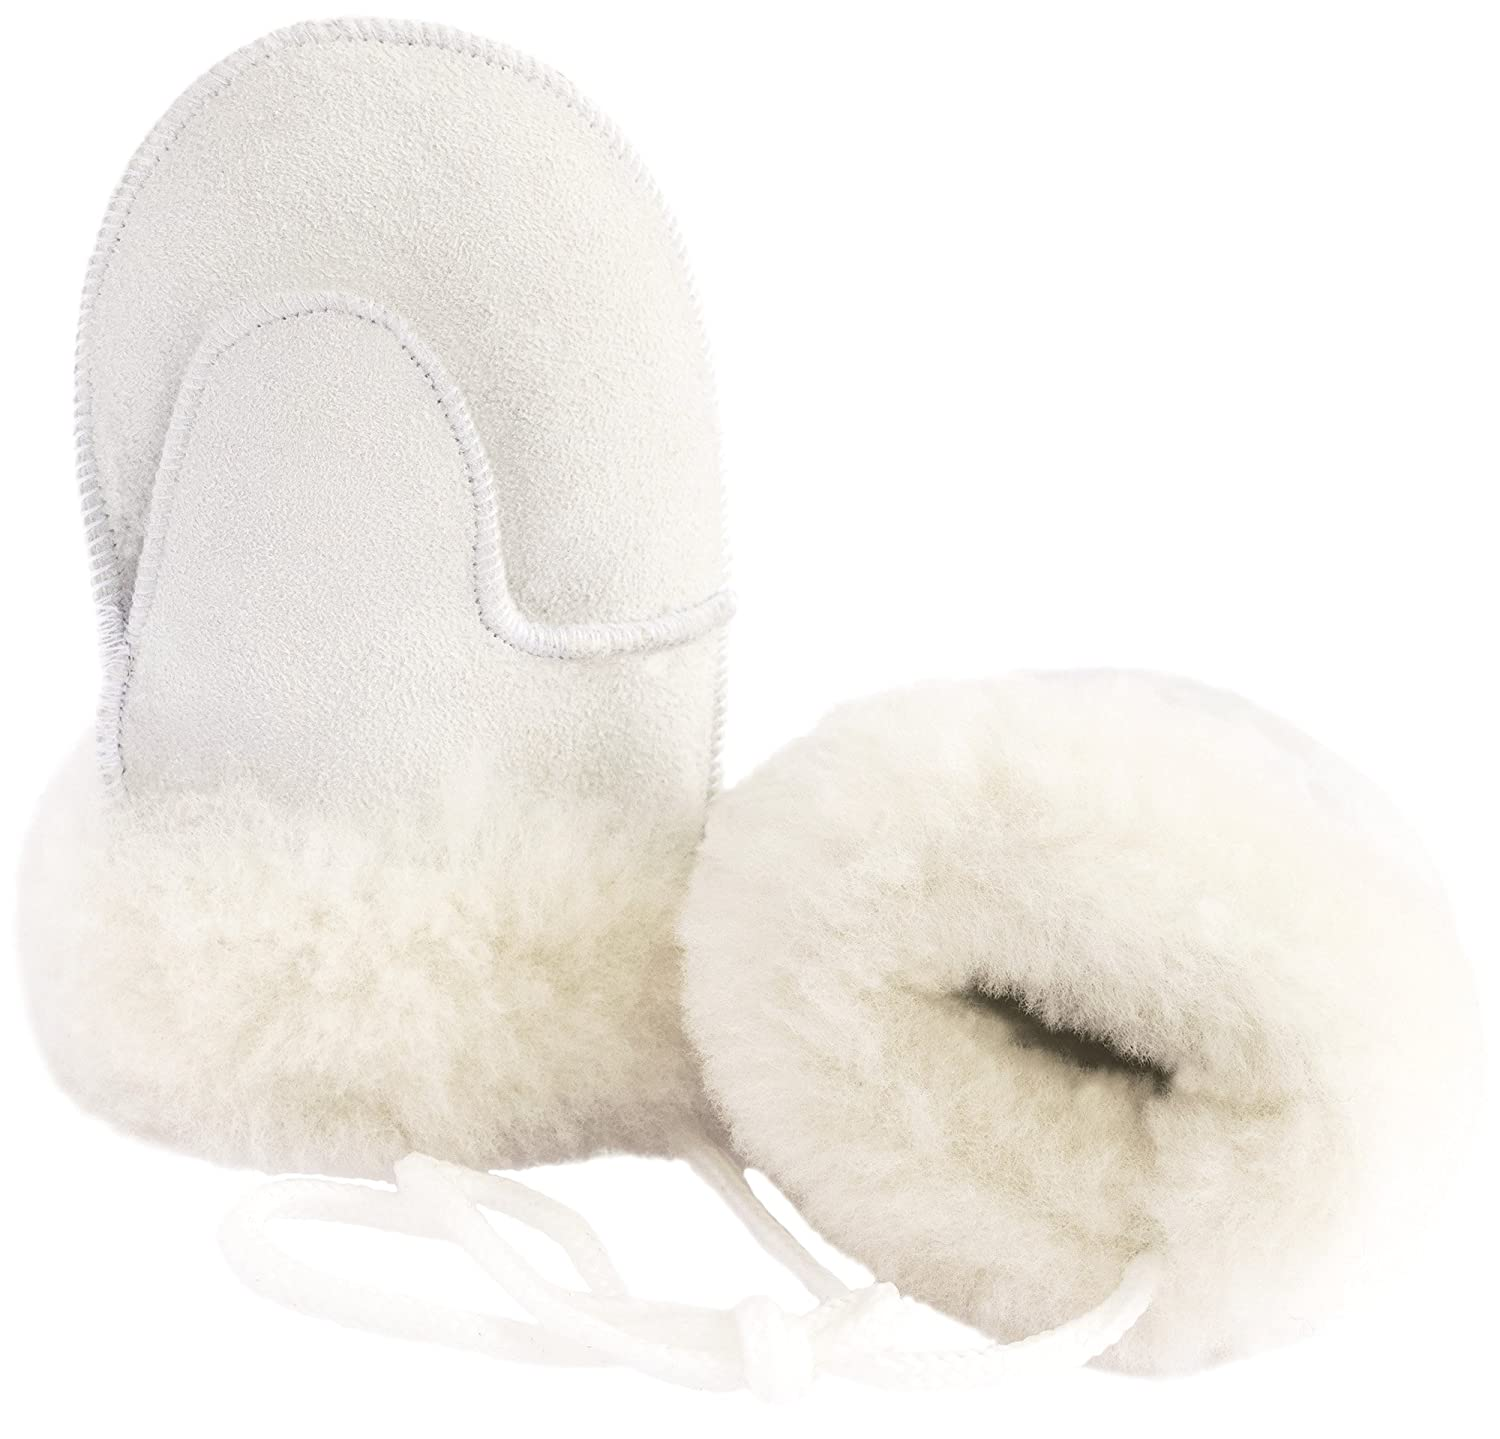 Ciora Baby Luxury Handmade 100% Lambskin Suede Mittens (White) With Cord (Medium) - GIFT BOXED Ciora Limited